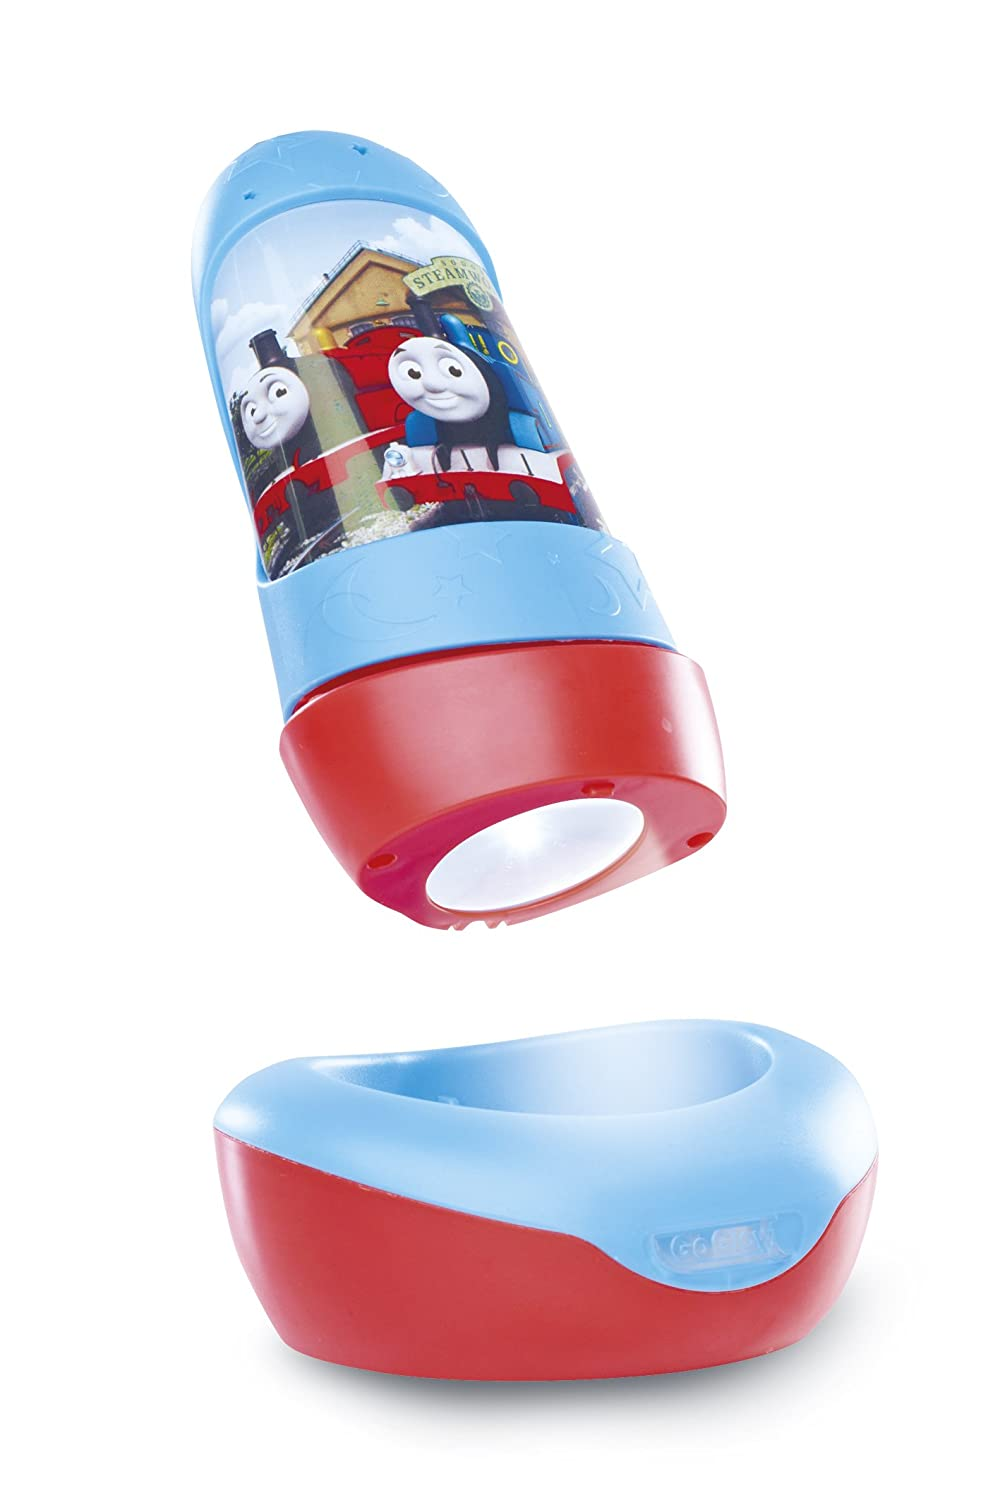 GoGlow Thomas the Tank Engine Night Light and Torch Thomas and Friends 253TMT01U